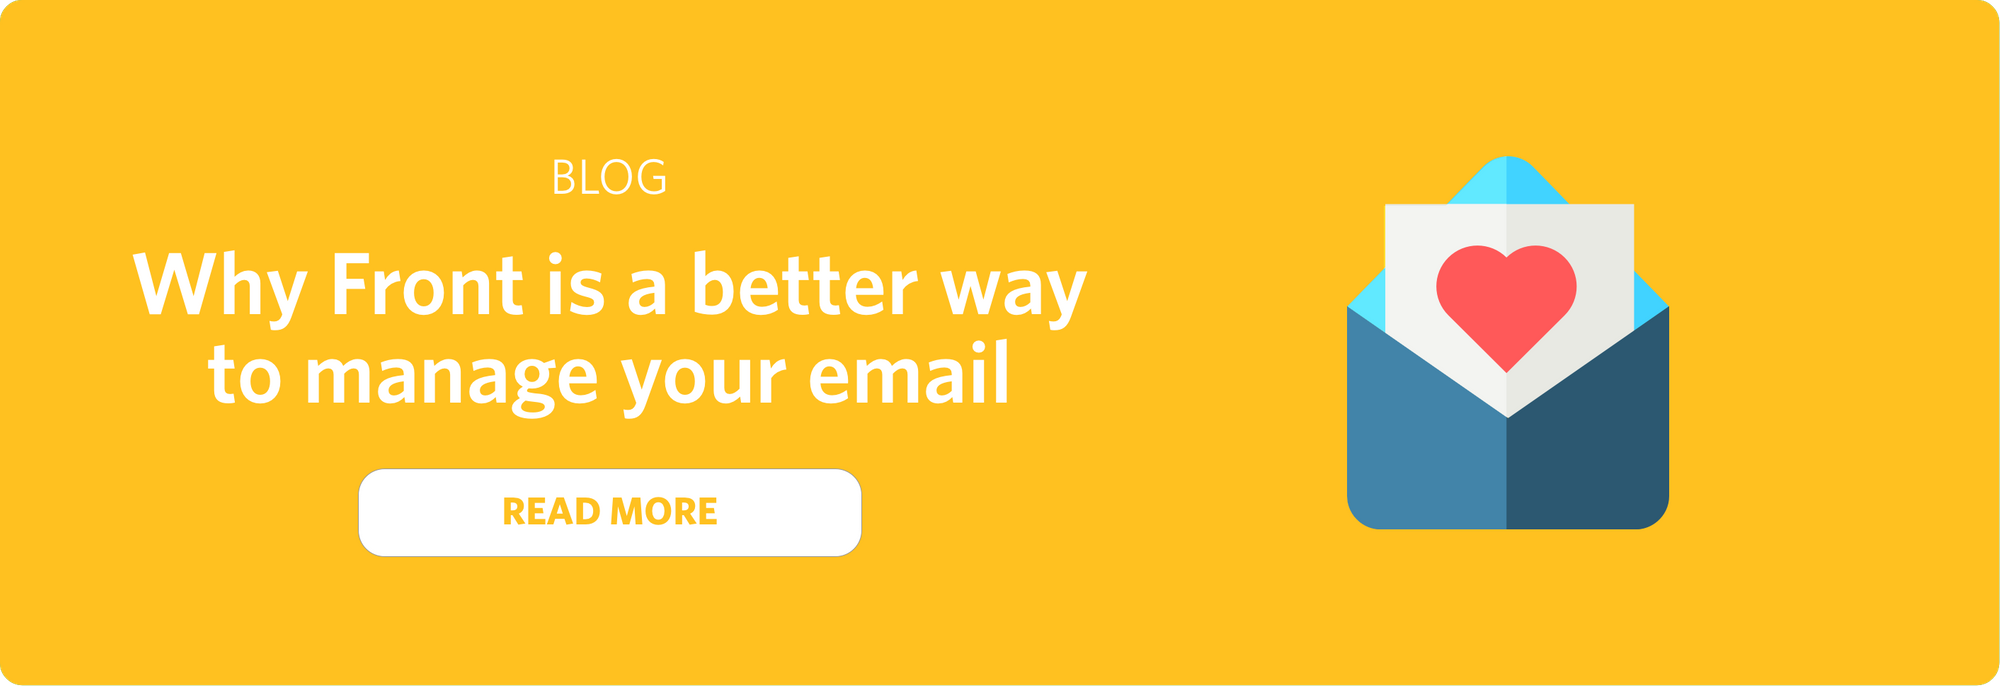 why-front-is-a-better-way-to-manage-your-email-2